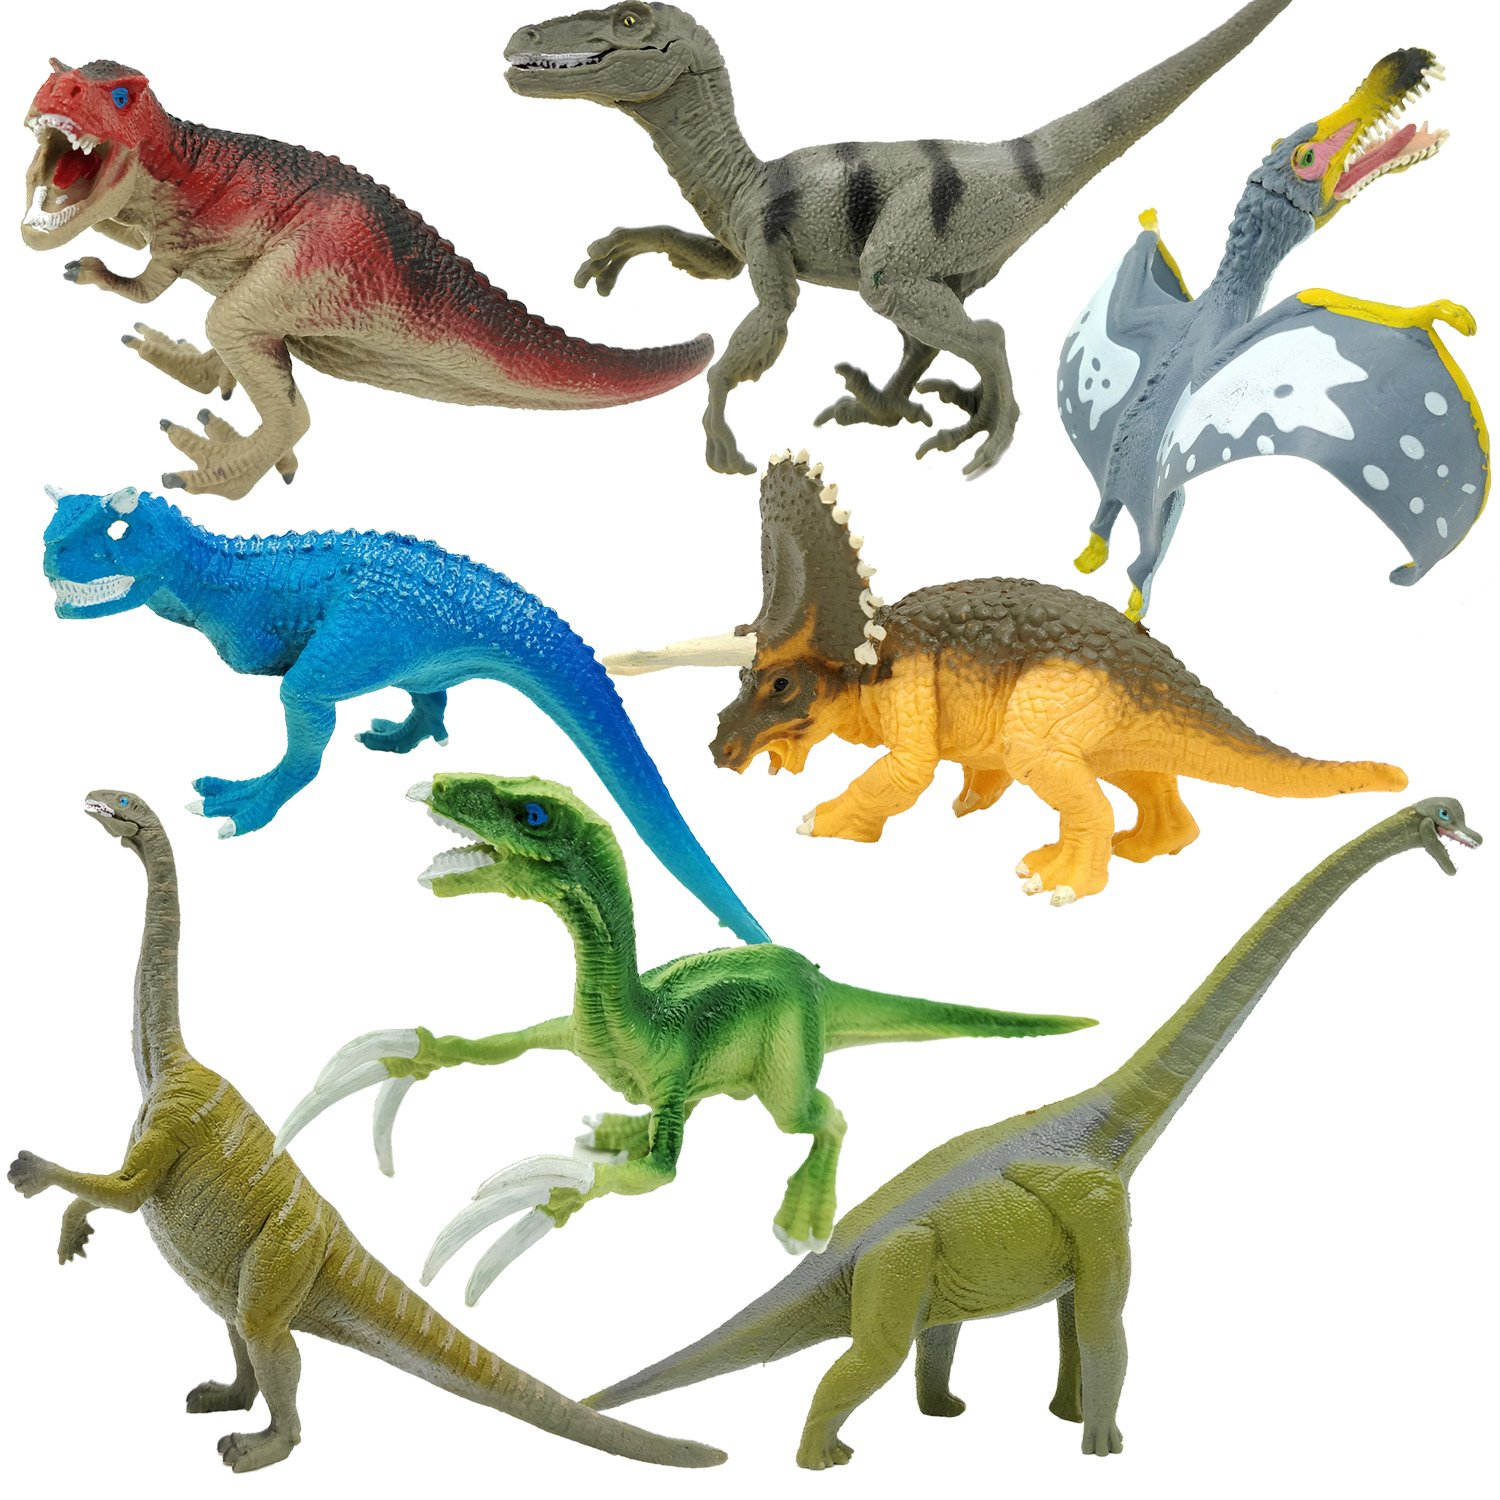 KISSKIDS 9'' Dinosaur Figures Toy Sets,Realistic Looking, Large Plastic Assorted Dinosaurs with Book for Kids, Pack of 16